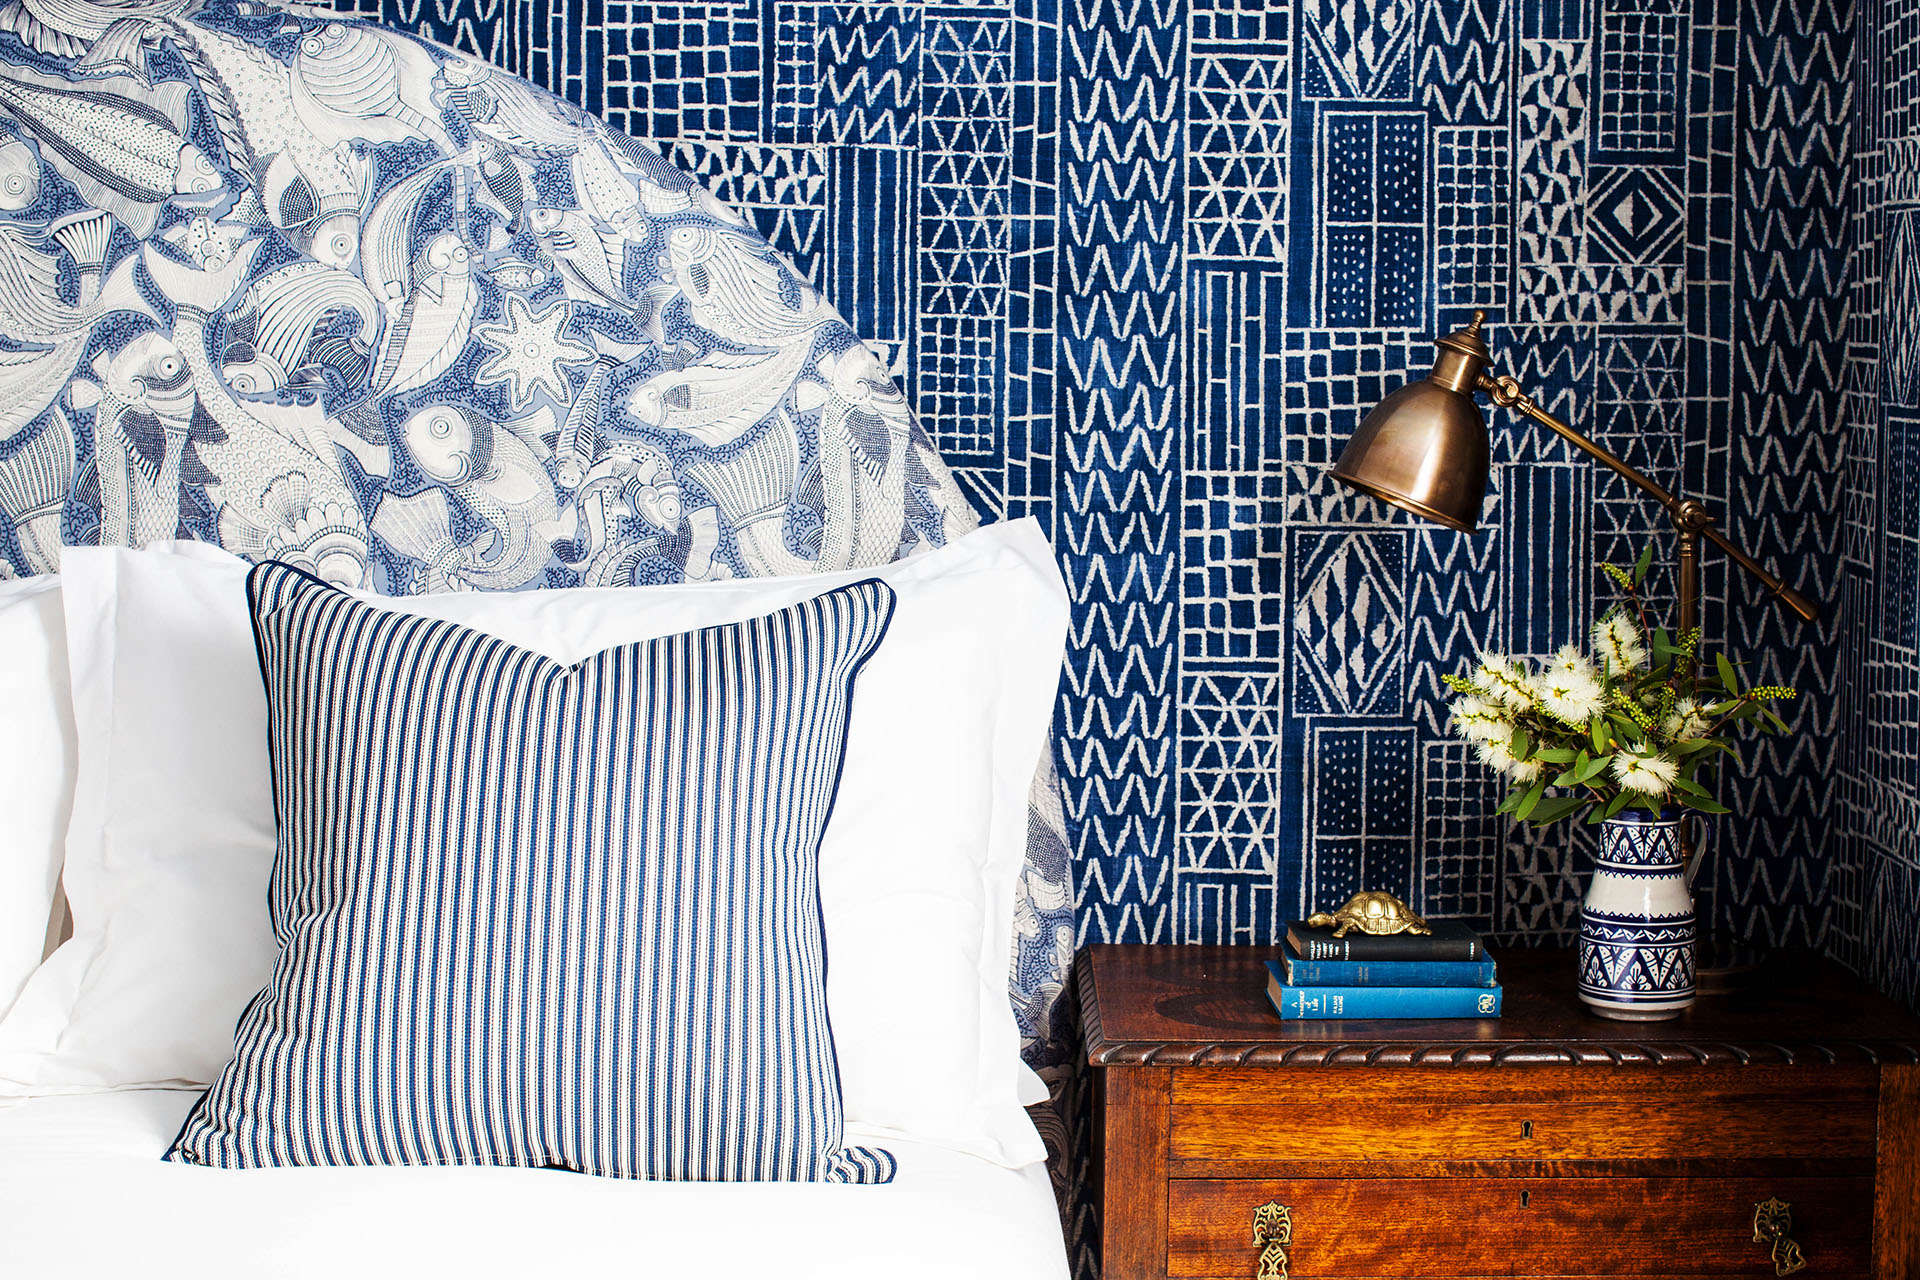 A mix of blue-and-white textile patterns on headboard and walls at Halcyon House, a boutique hotel in Cabarita Beach, Australia, designed by Anna Spiro | Remodelista